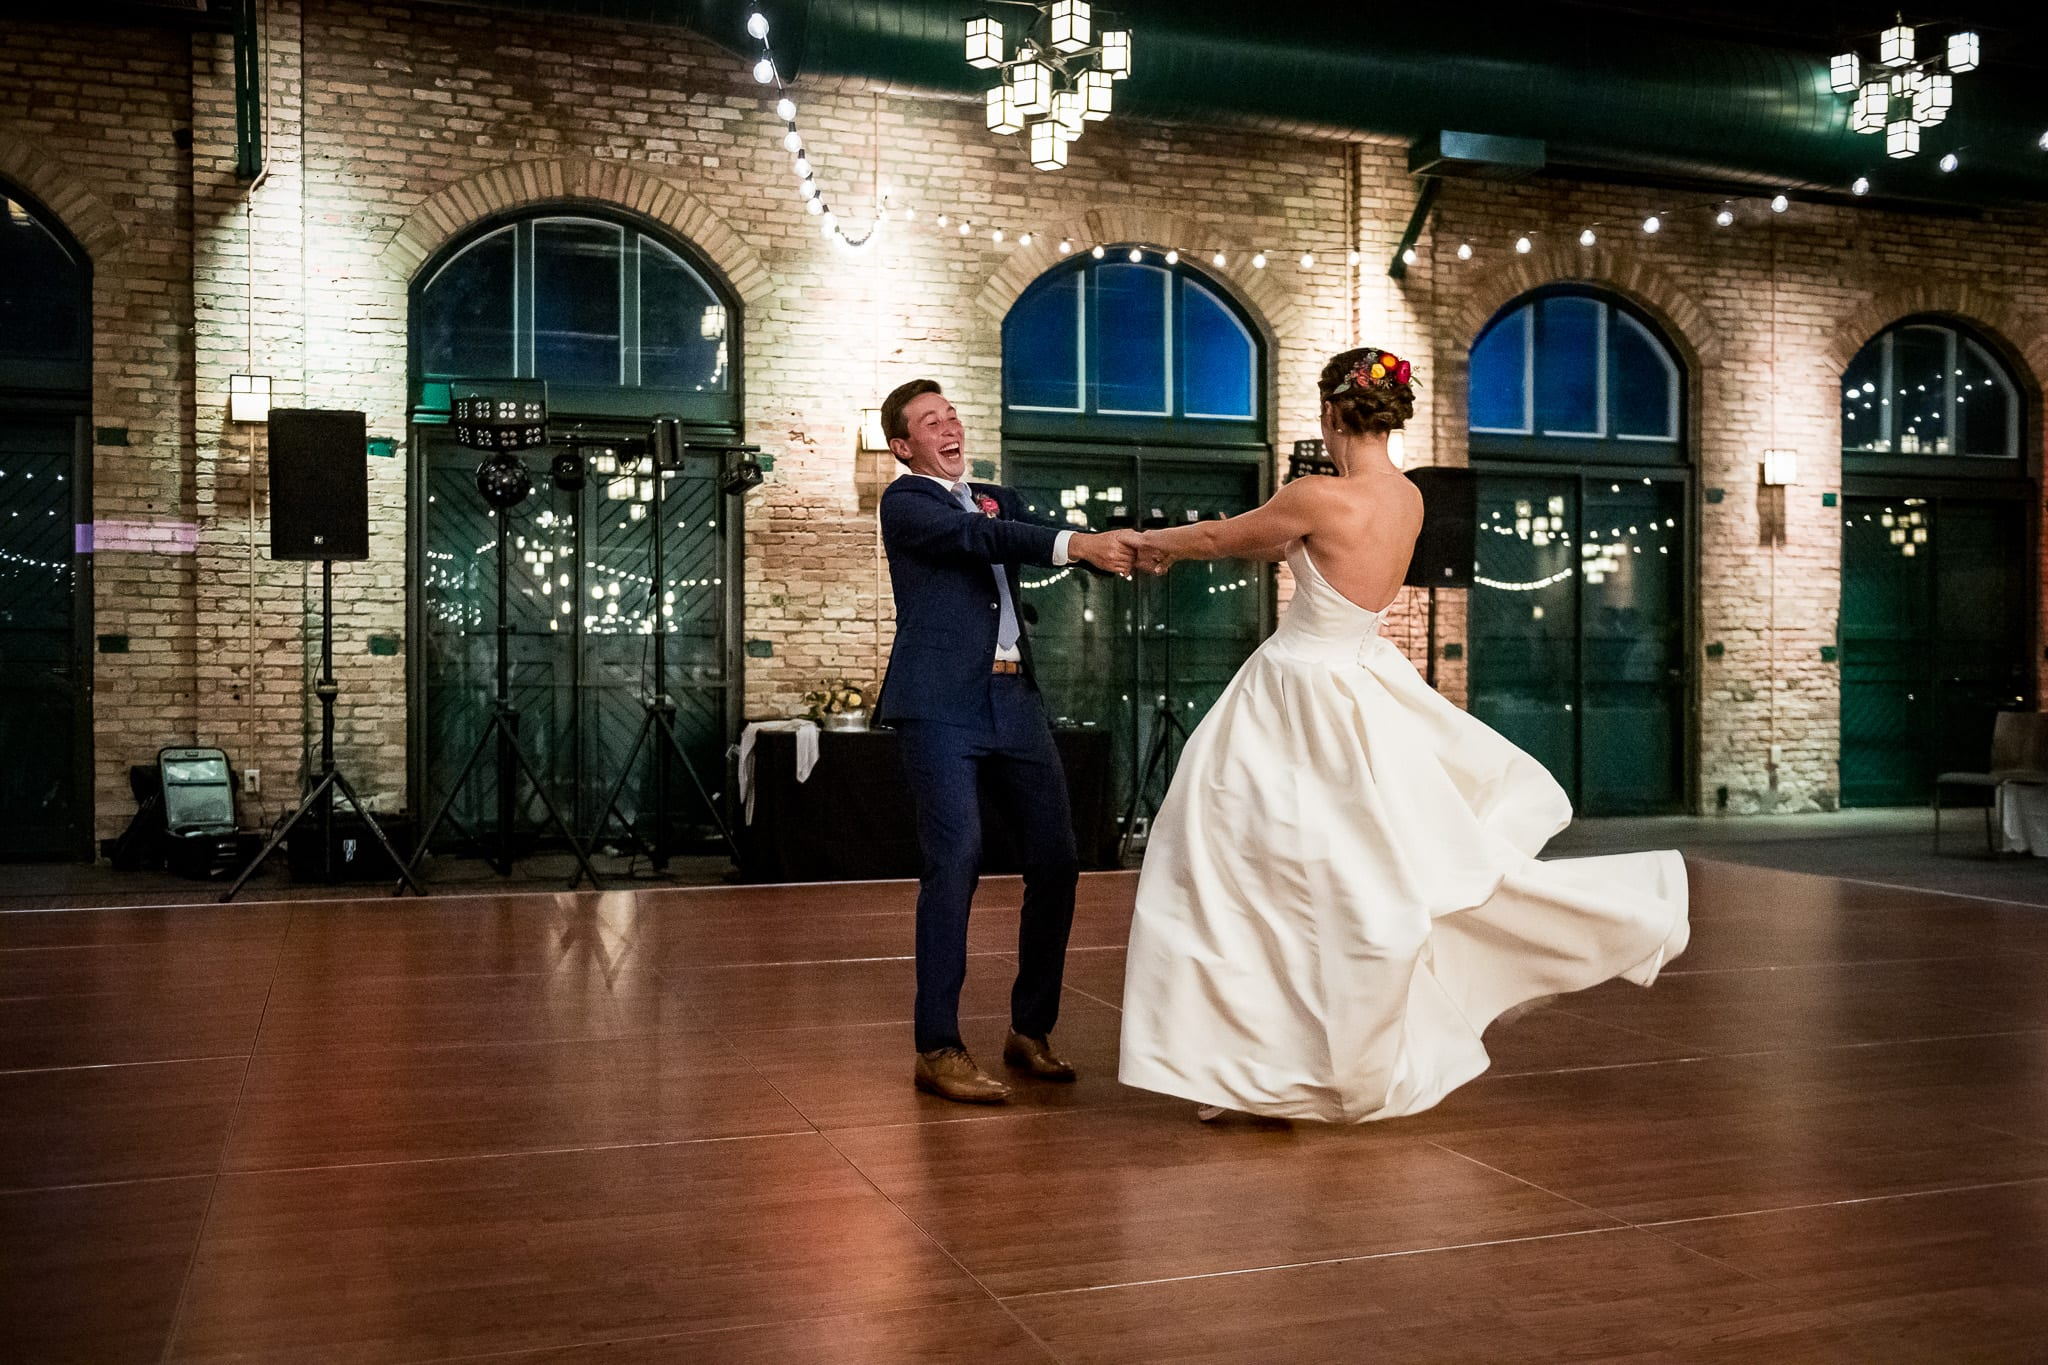 Groom swings his bride around on the dance floor